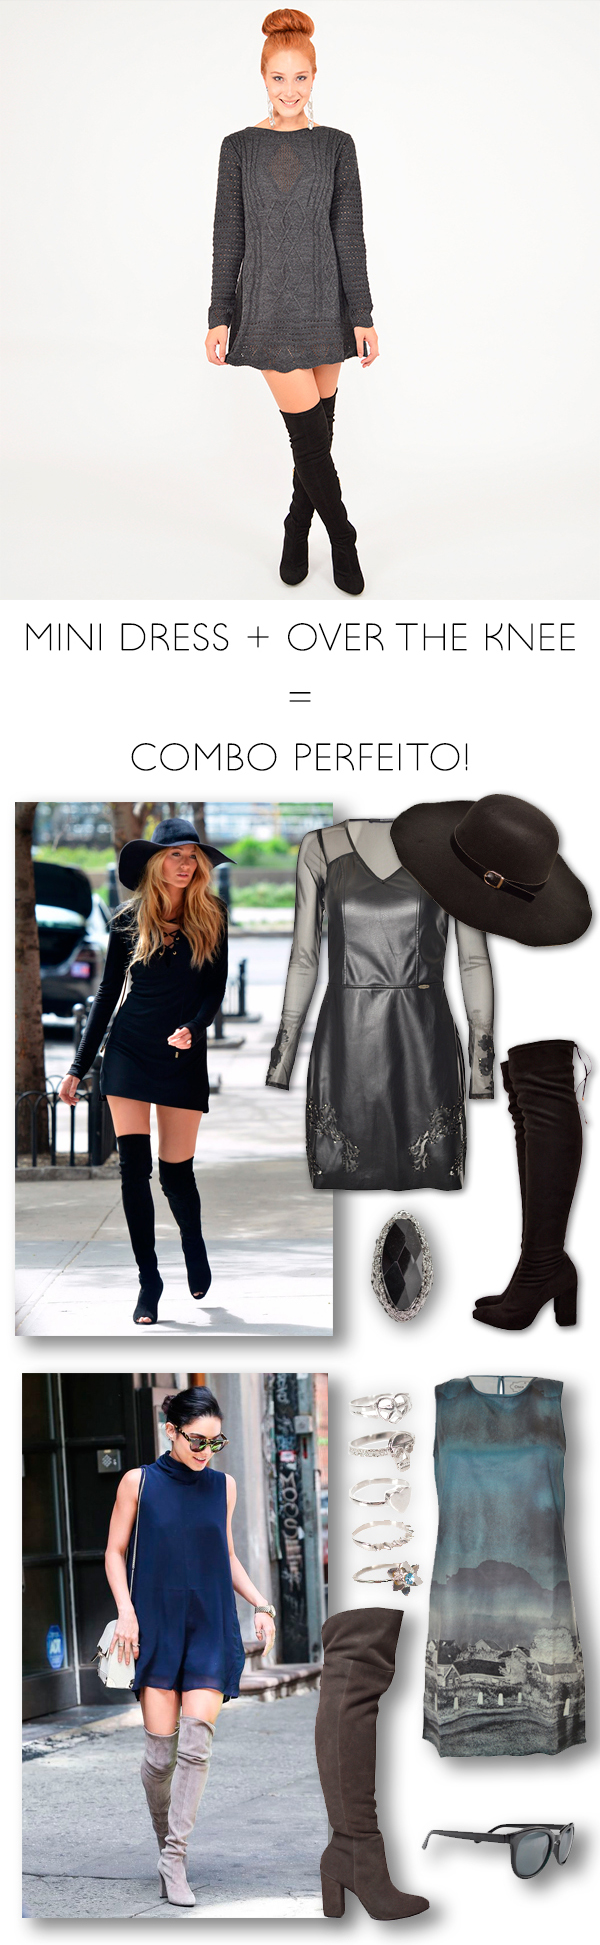 Mini Dress + Over the Knee = Combo perfeito! #moda #look #getthelook #estilo #looknowlook